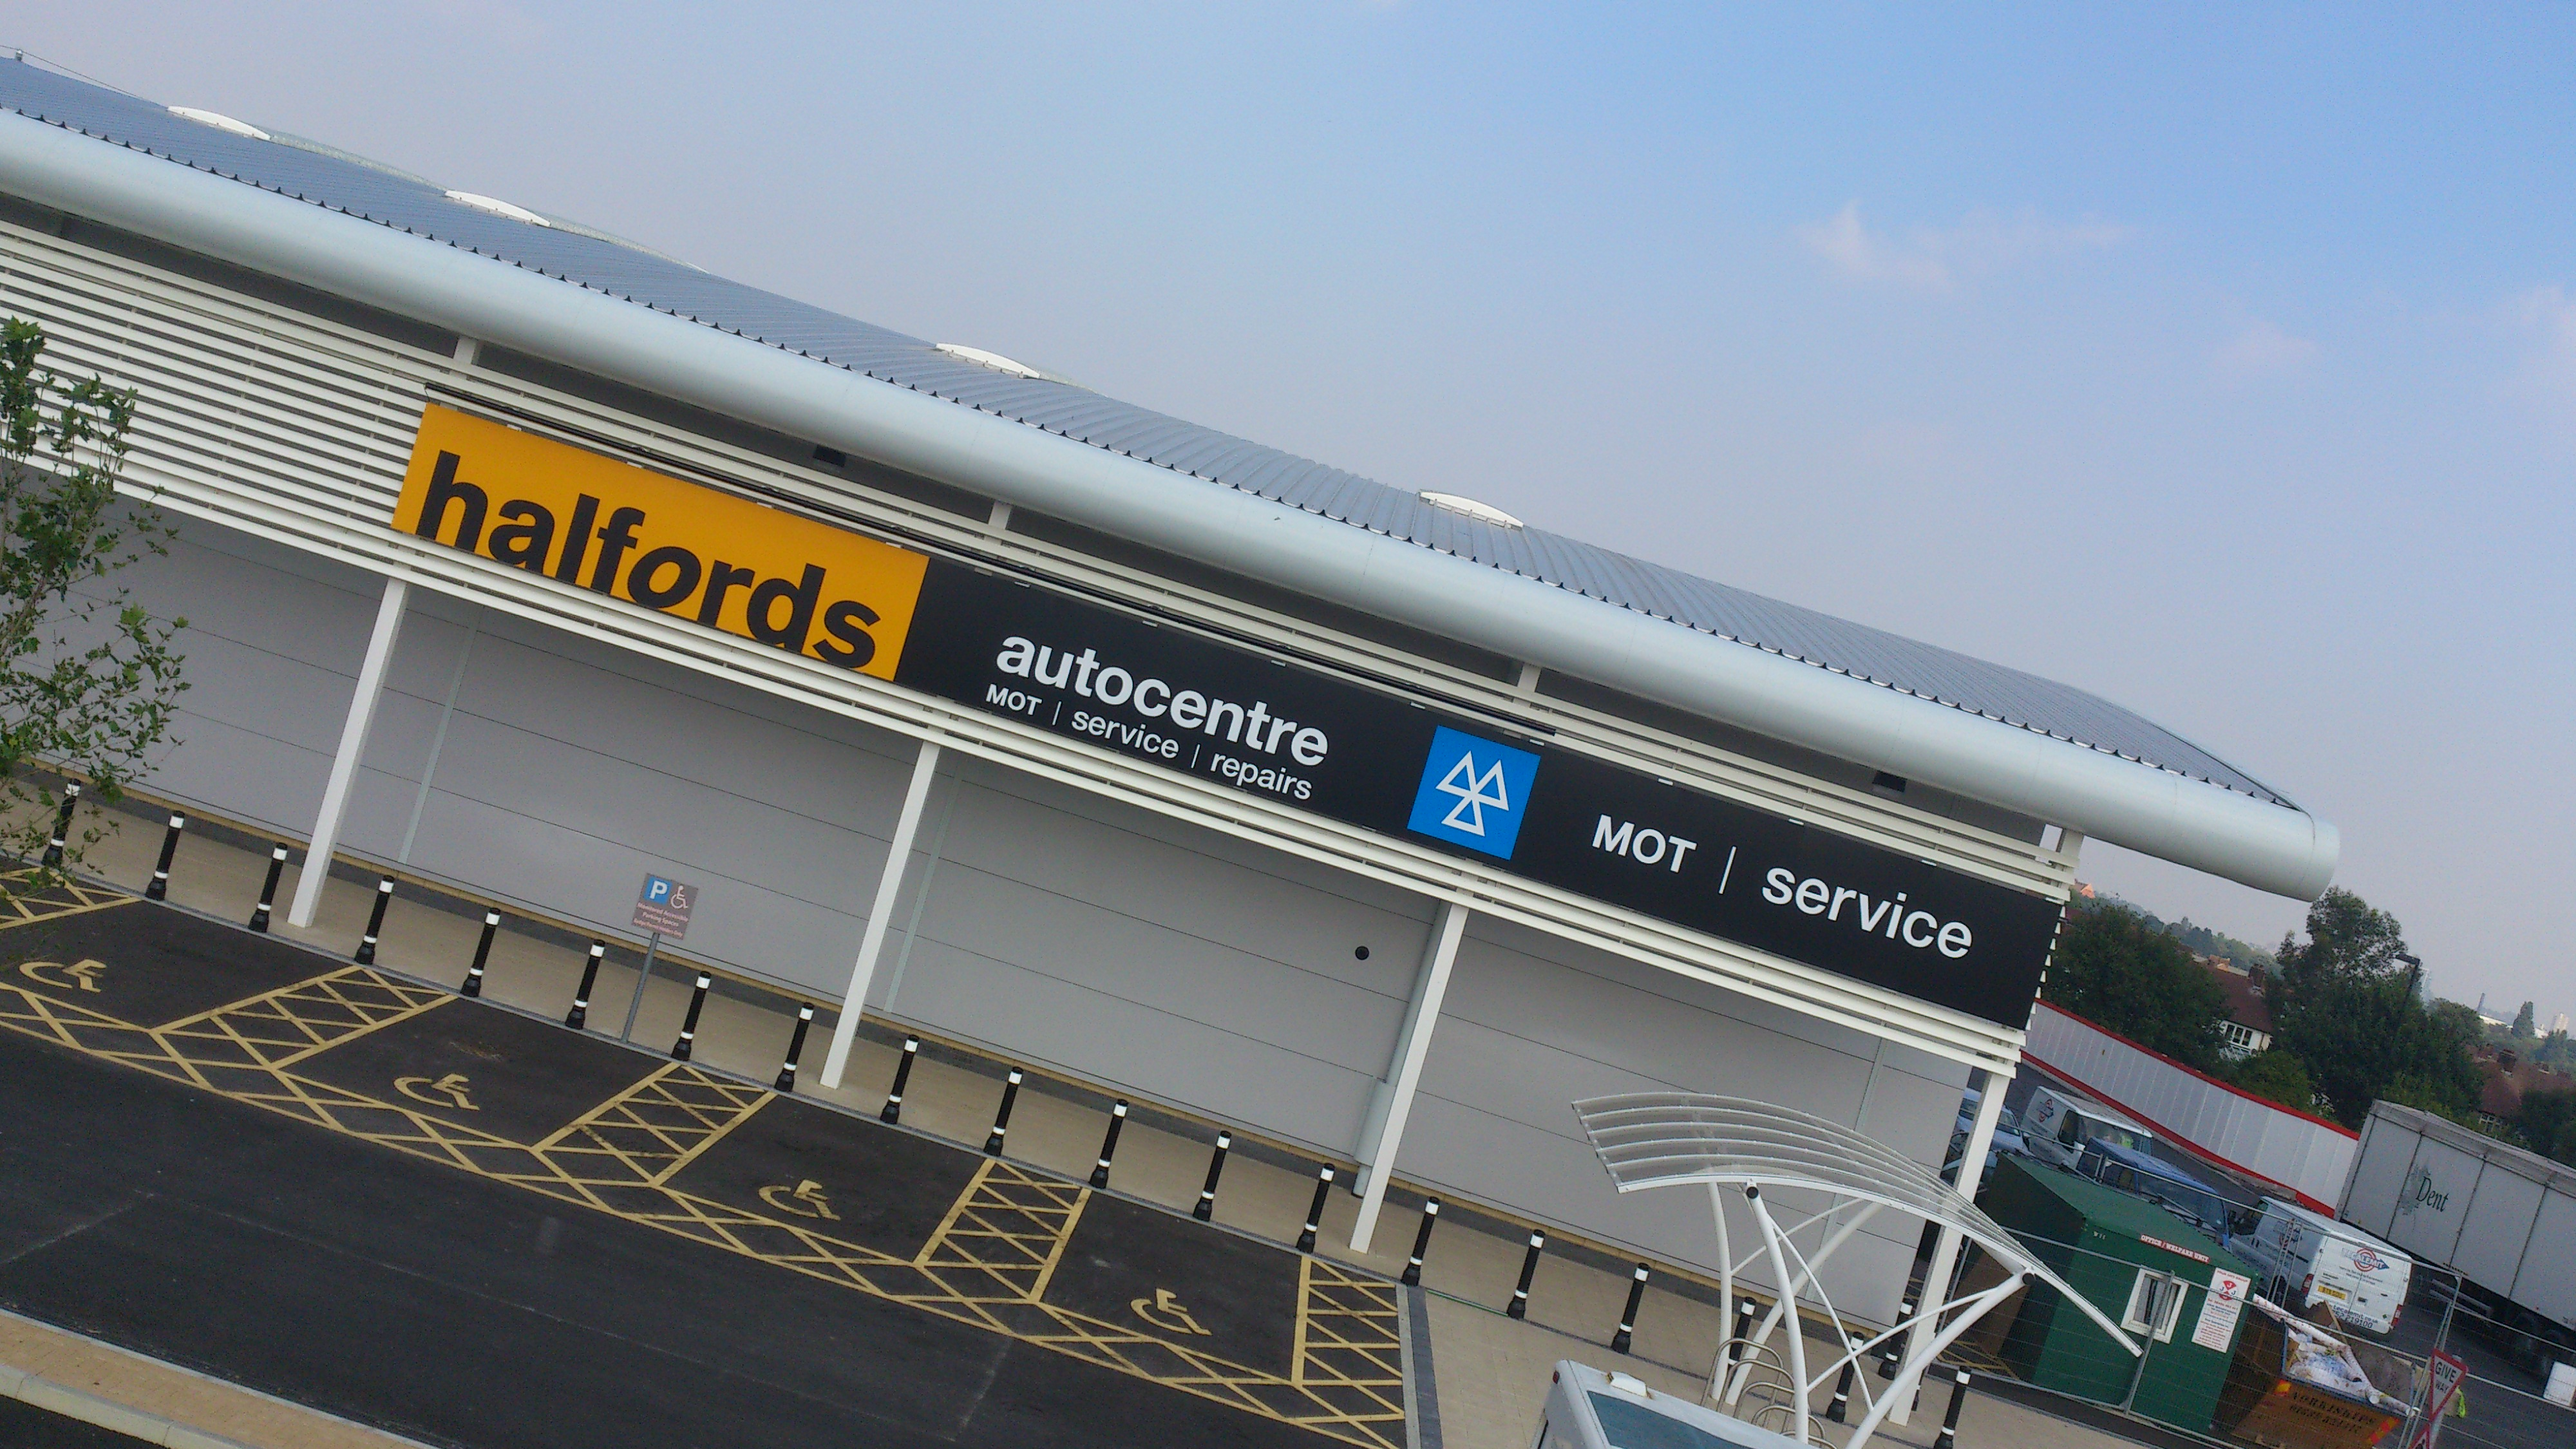 halfords retail signage